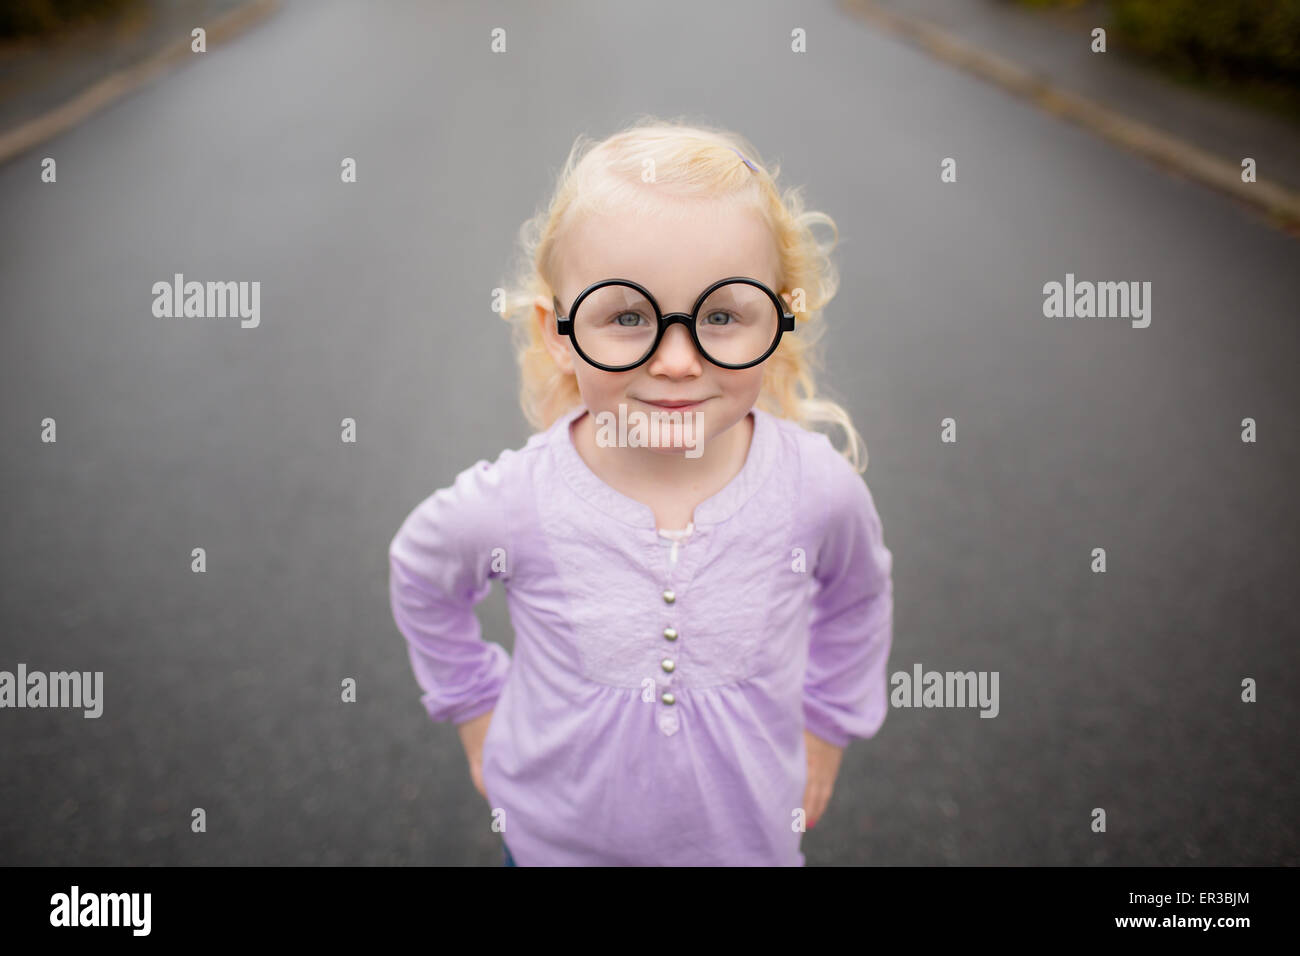 Portrait of a girl wearing silly glasses - Stock Image